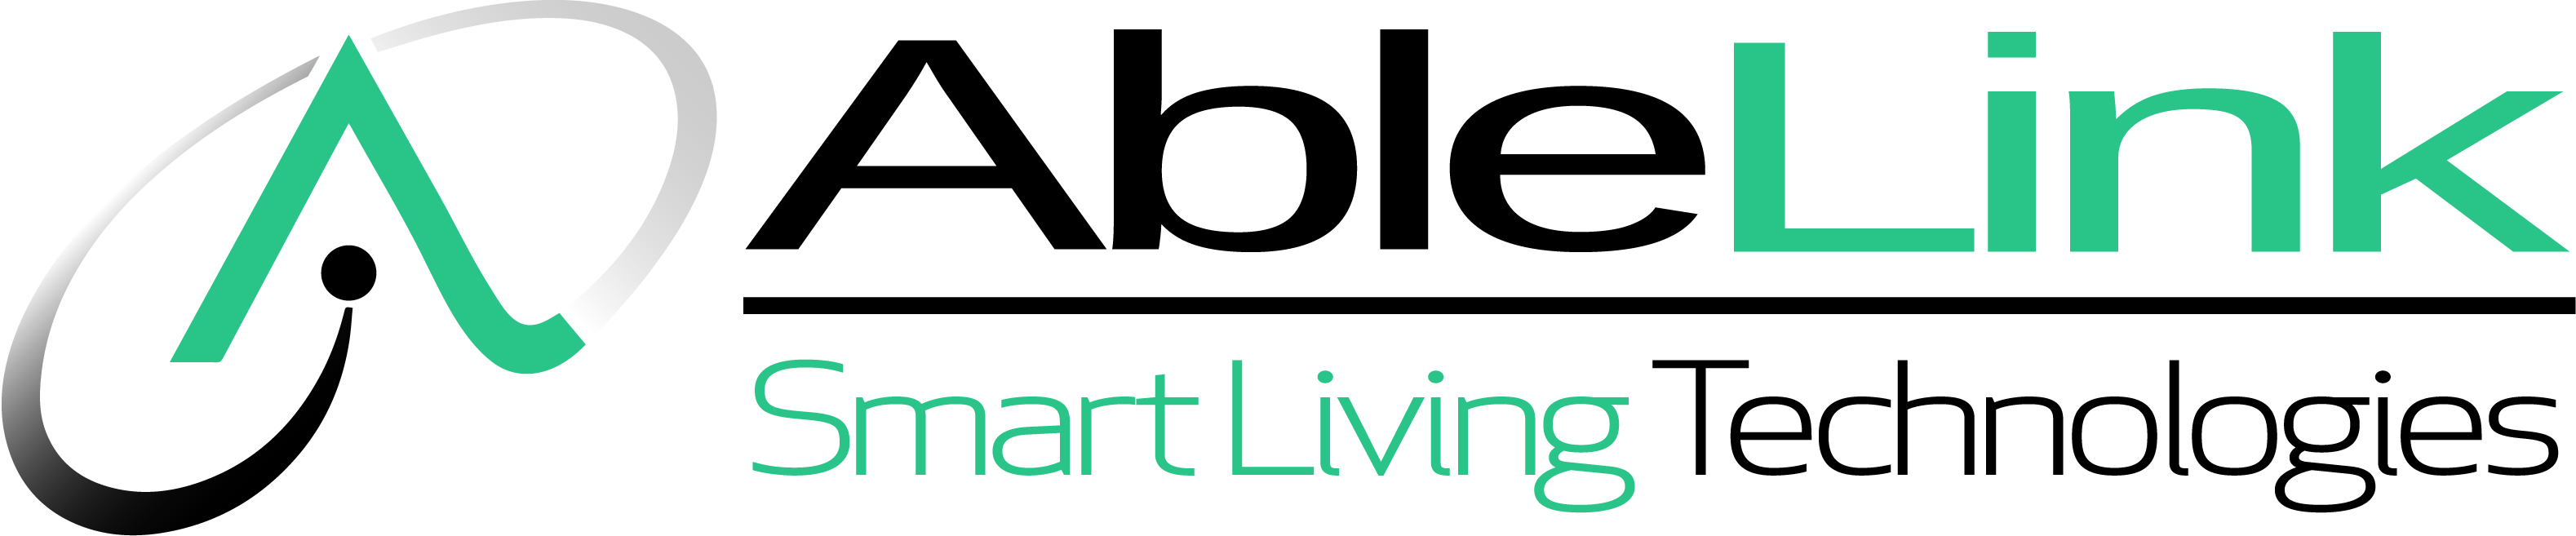 AbleLink Smart Living Technologies logo